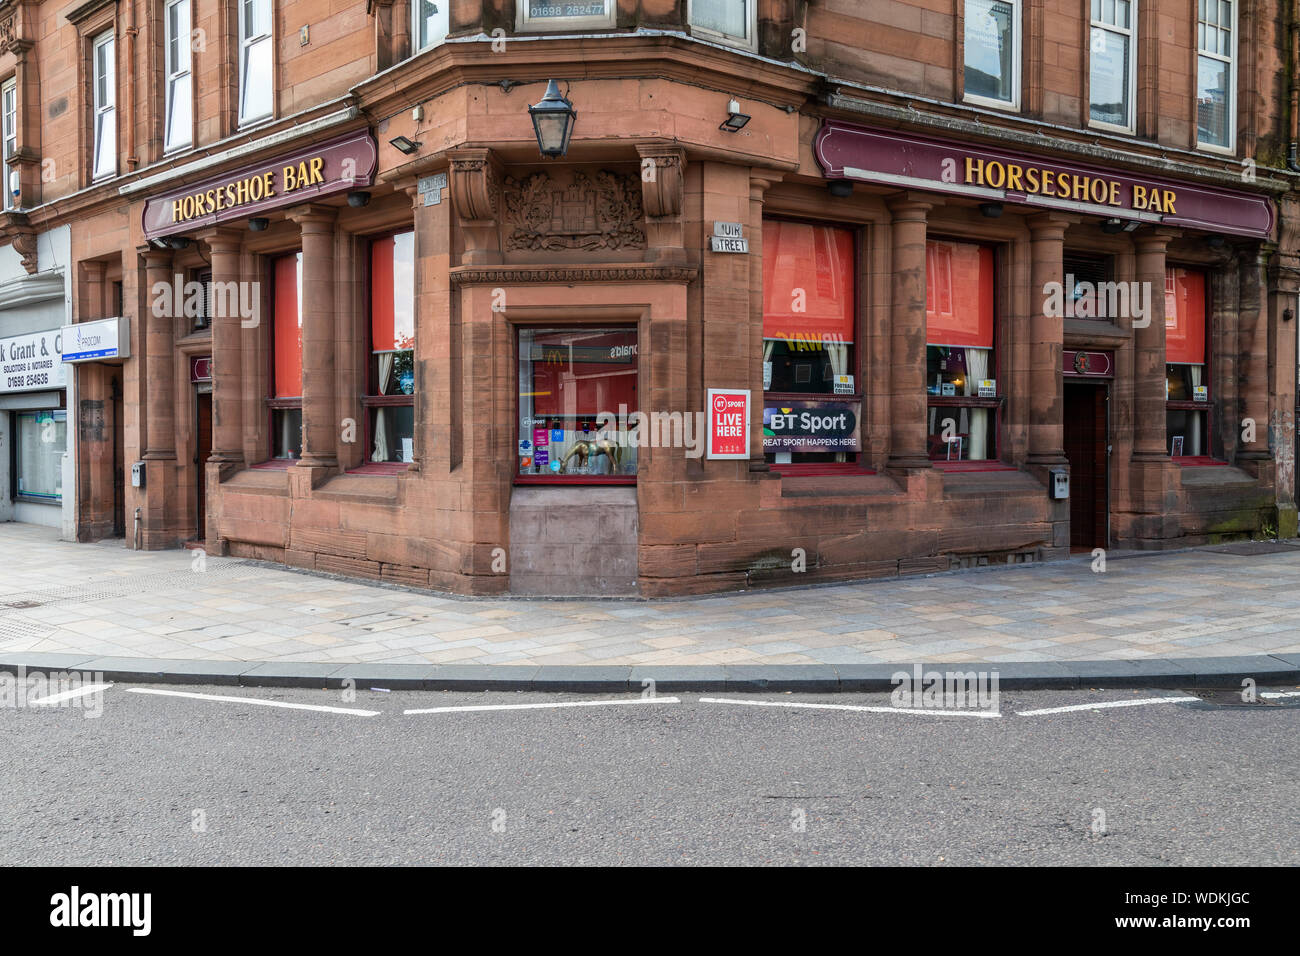 The Horseshoe Bar on Muir Street in Motherwell, North Lanarkshire, Scotland Stock Photo